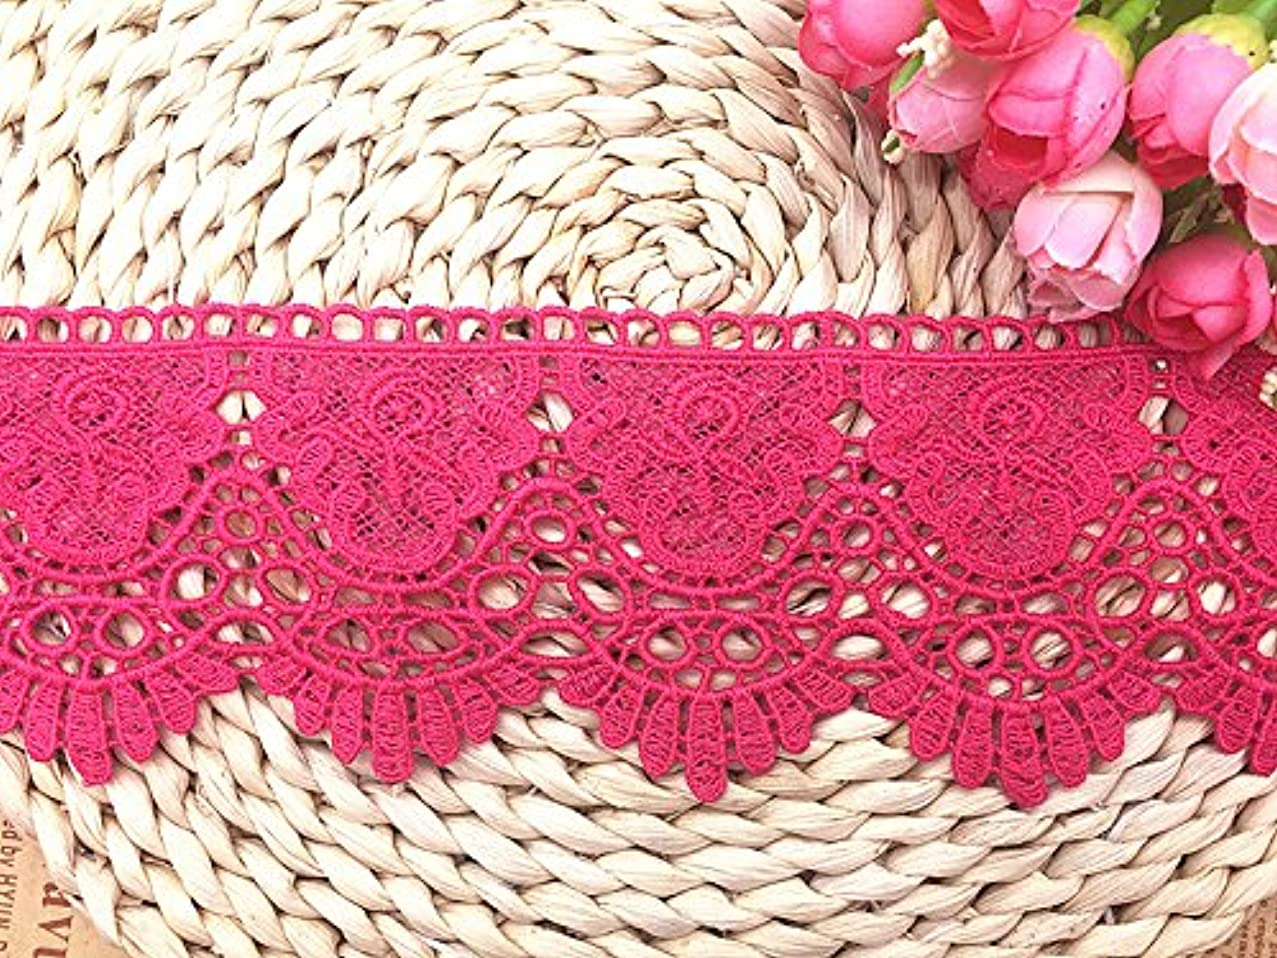 9CM Width Europe Crown Pattern Inelastic Embroidery Lace Trim,Curtain Tablecloth Slipcover Bridal DIY Clothing/Accessories.(4 Yards in one Package) (Plum)